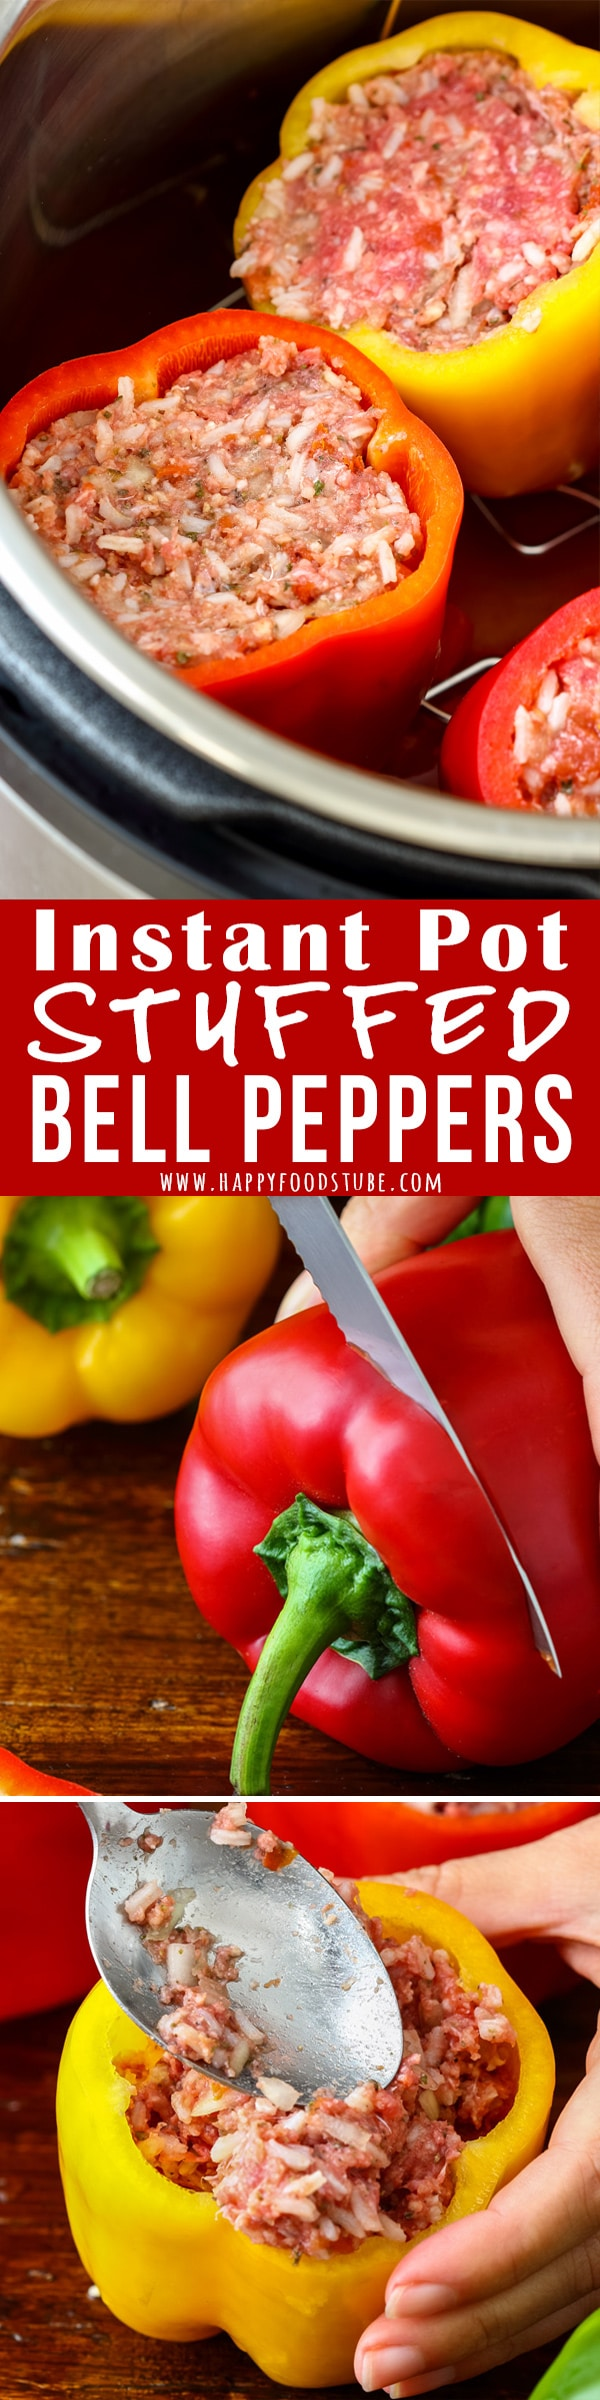 Making Instant Pot Stuffed Bell Peppers can't get any easier than this! Simply fill peppers and cook under pressure. Easy-peasy comfort food ready in no time! #instantpot #stuffedpeppers #homecooking #easymeal #pressurecooking #comfortfood #lunch #dinner #howtomake #filledpeppers